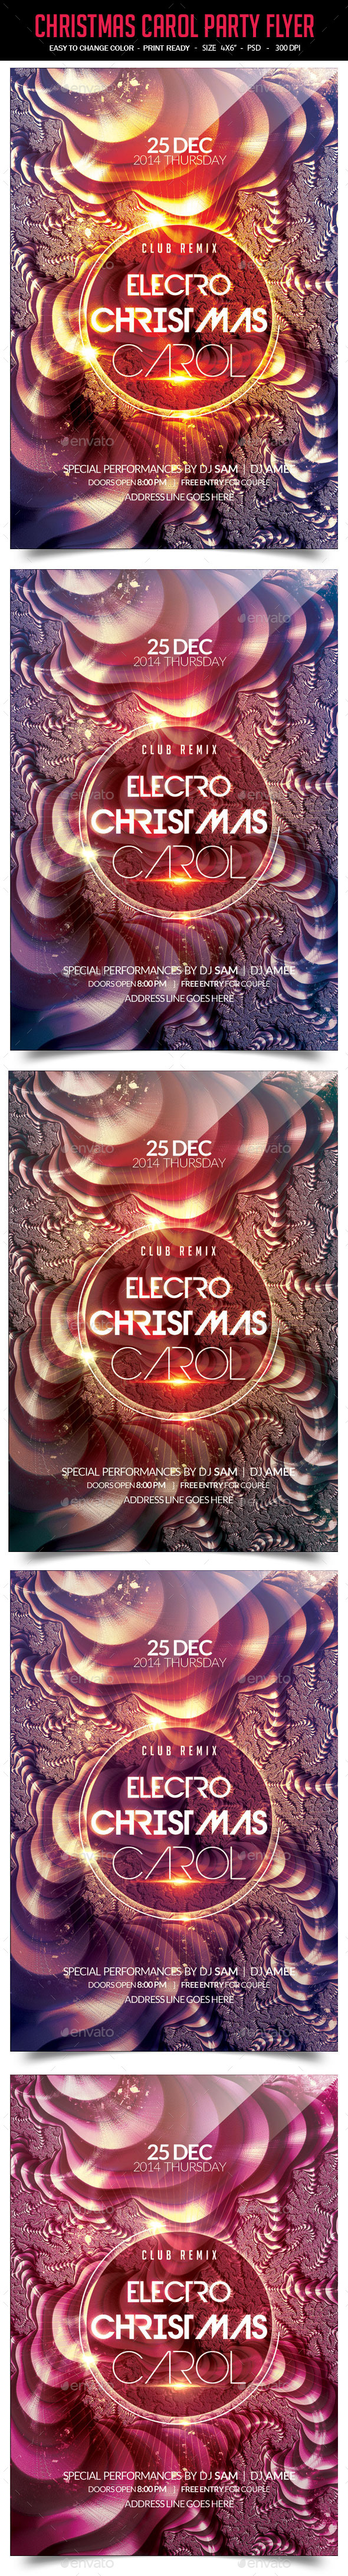 GraphicRiver Electro Christmas Carol Party Flyer 9649882